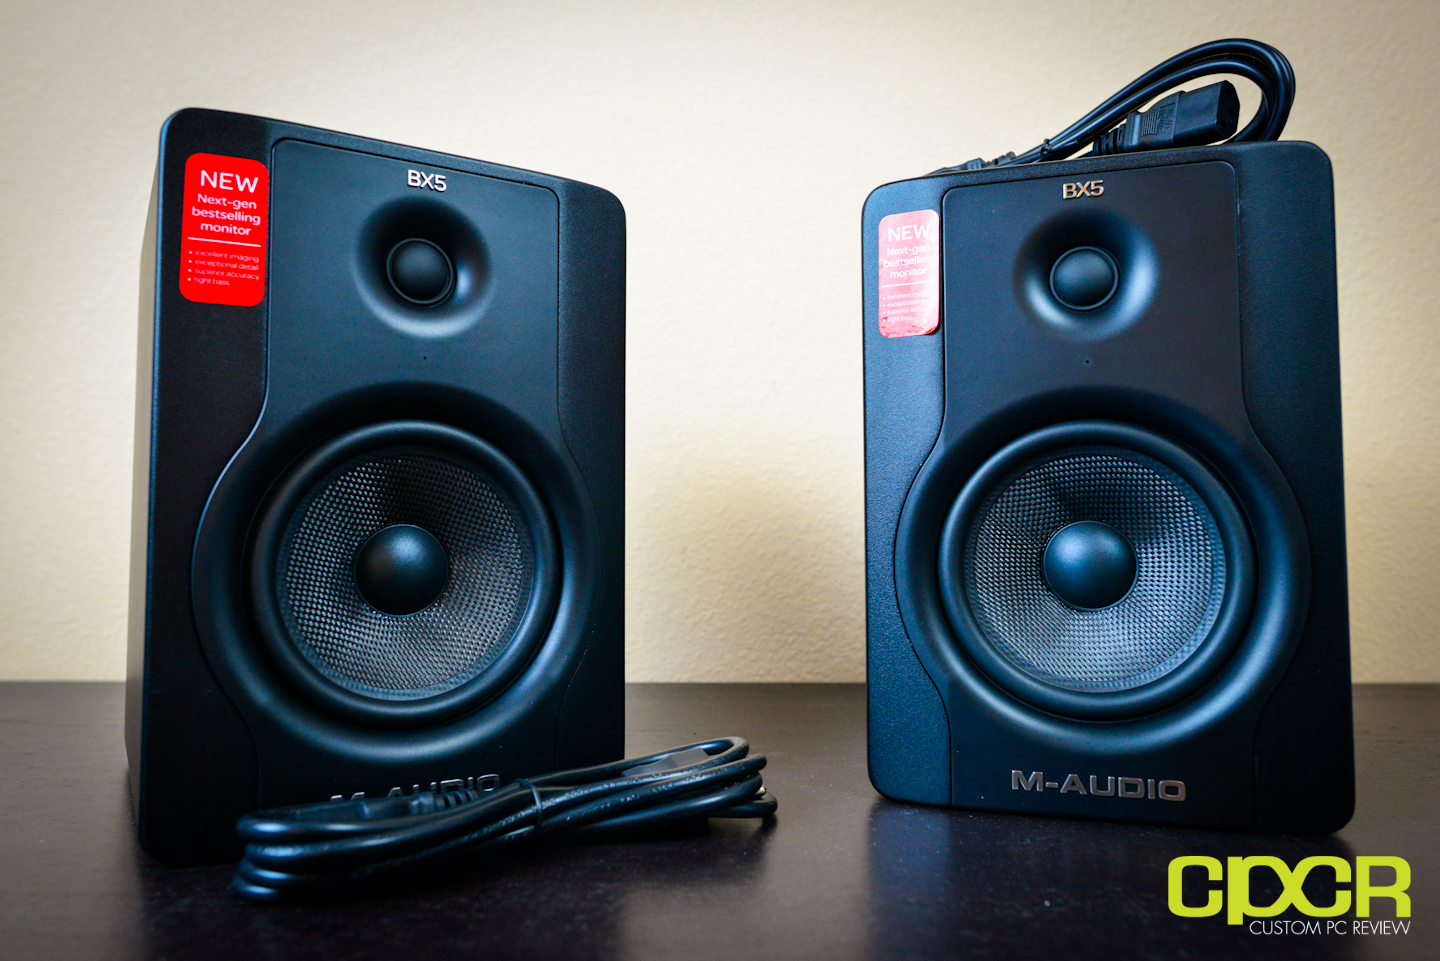 m audio bx5 d2 studio monitor review custom pc review. Black Bedroom Furniture Sets. Home Design Ideas